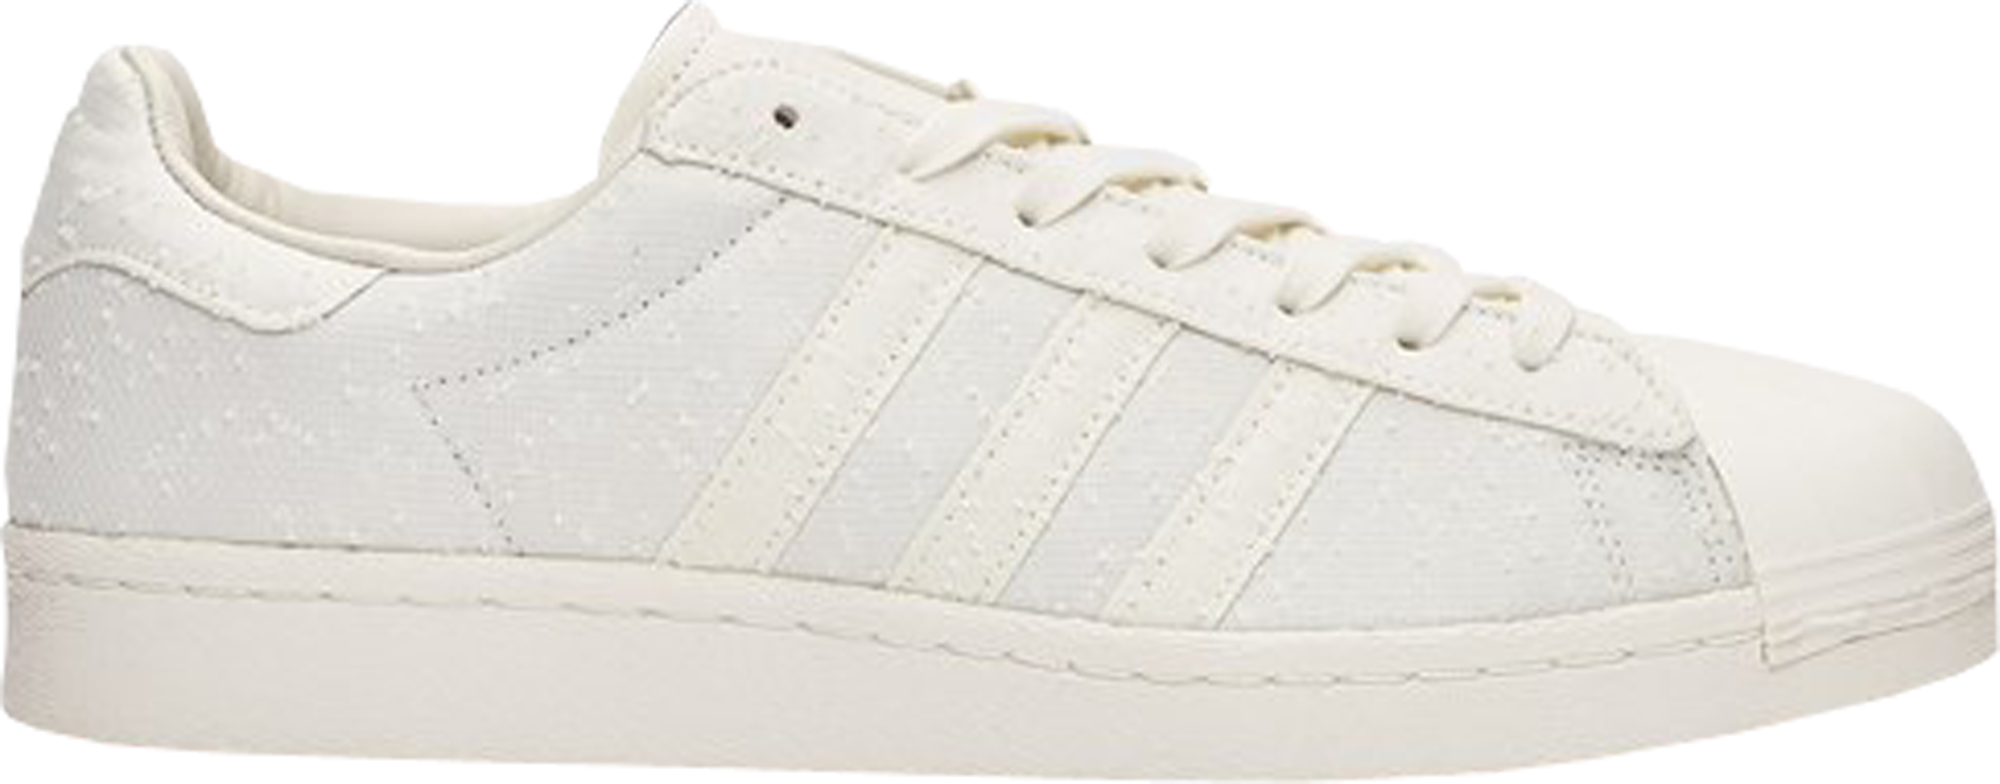 adidas Superstar Boost SNS Shades Of White V2